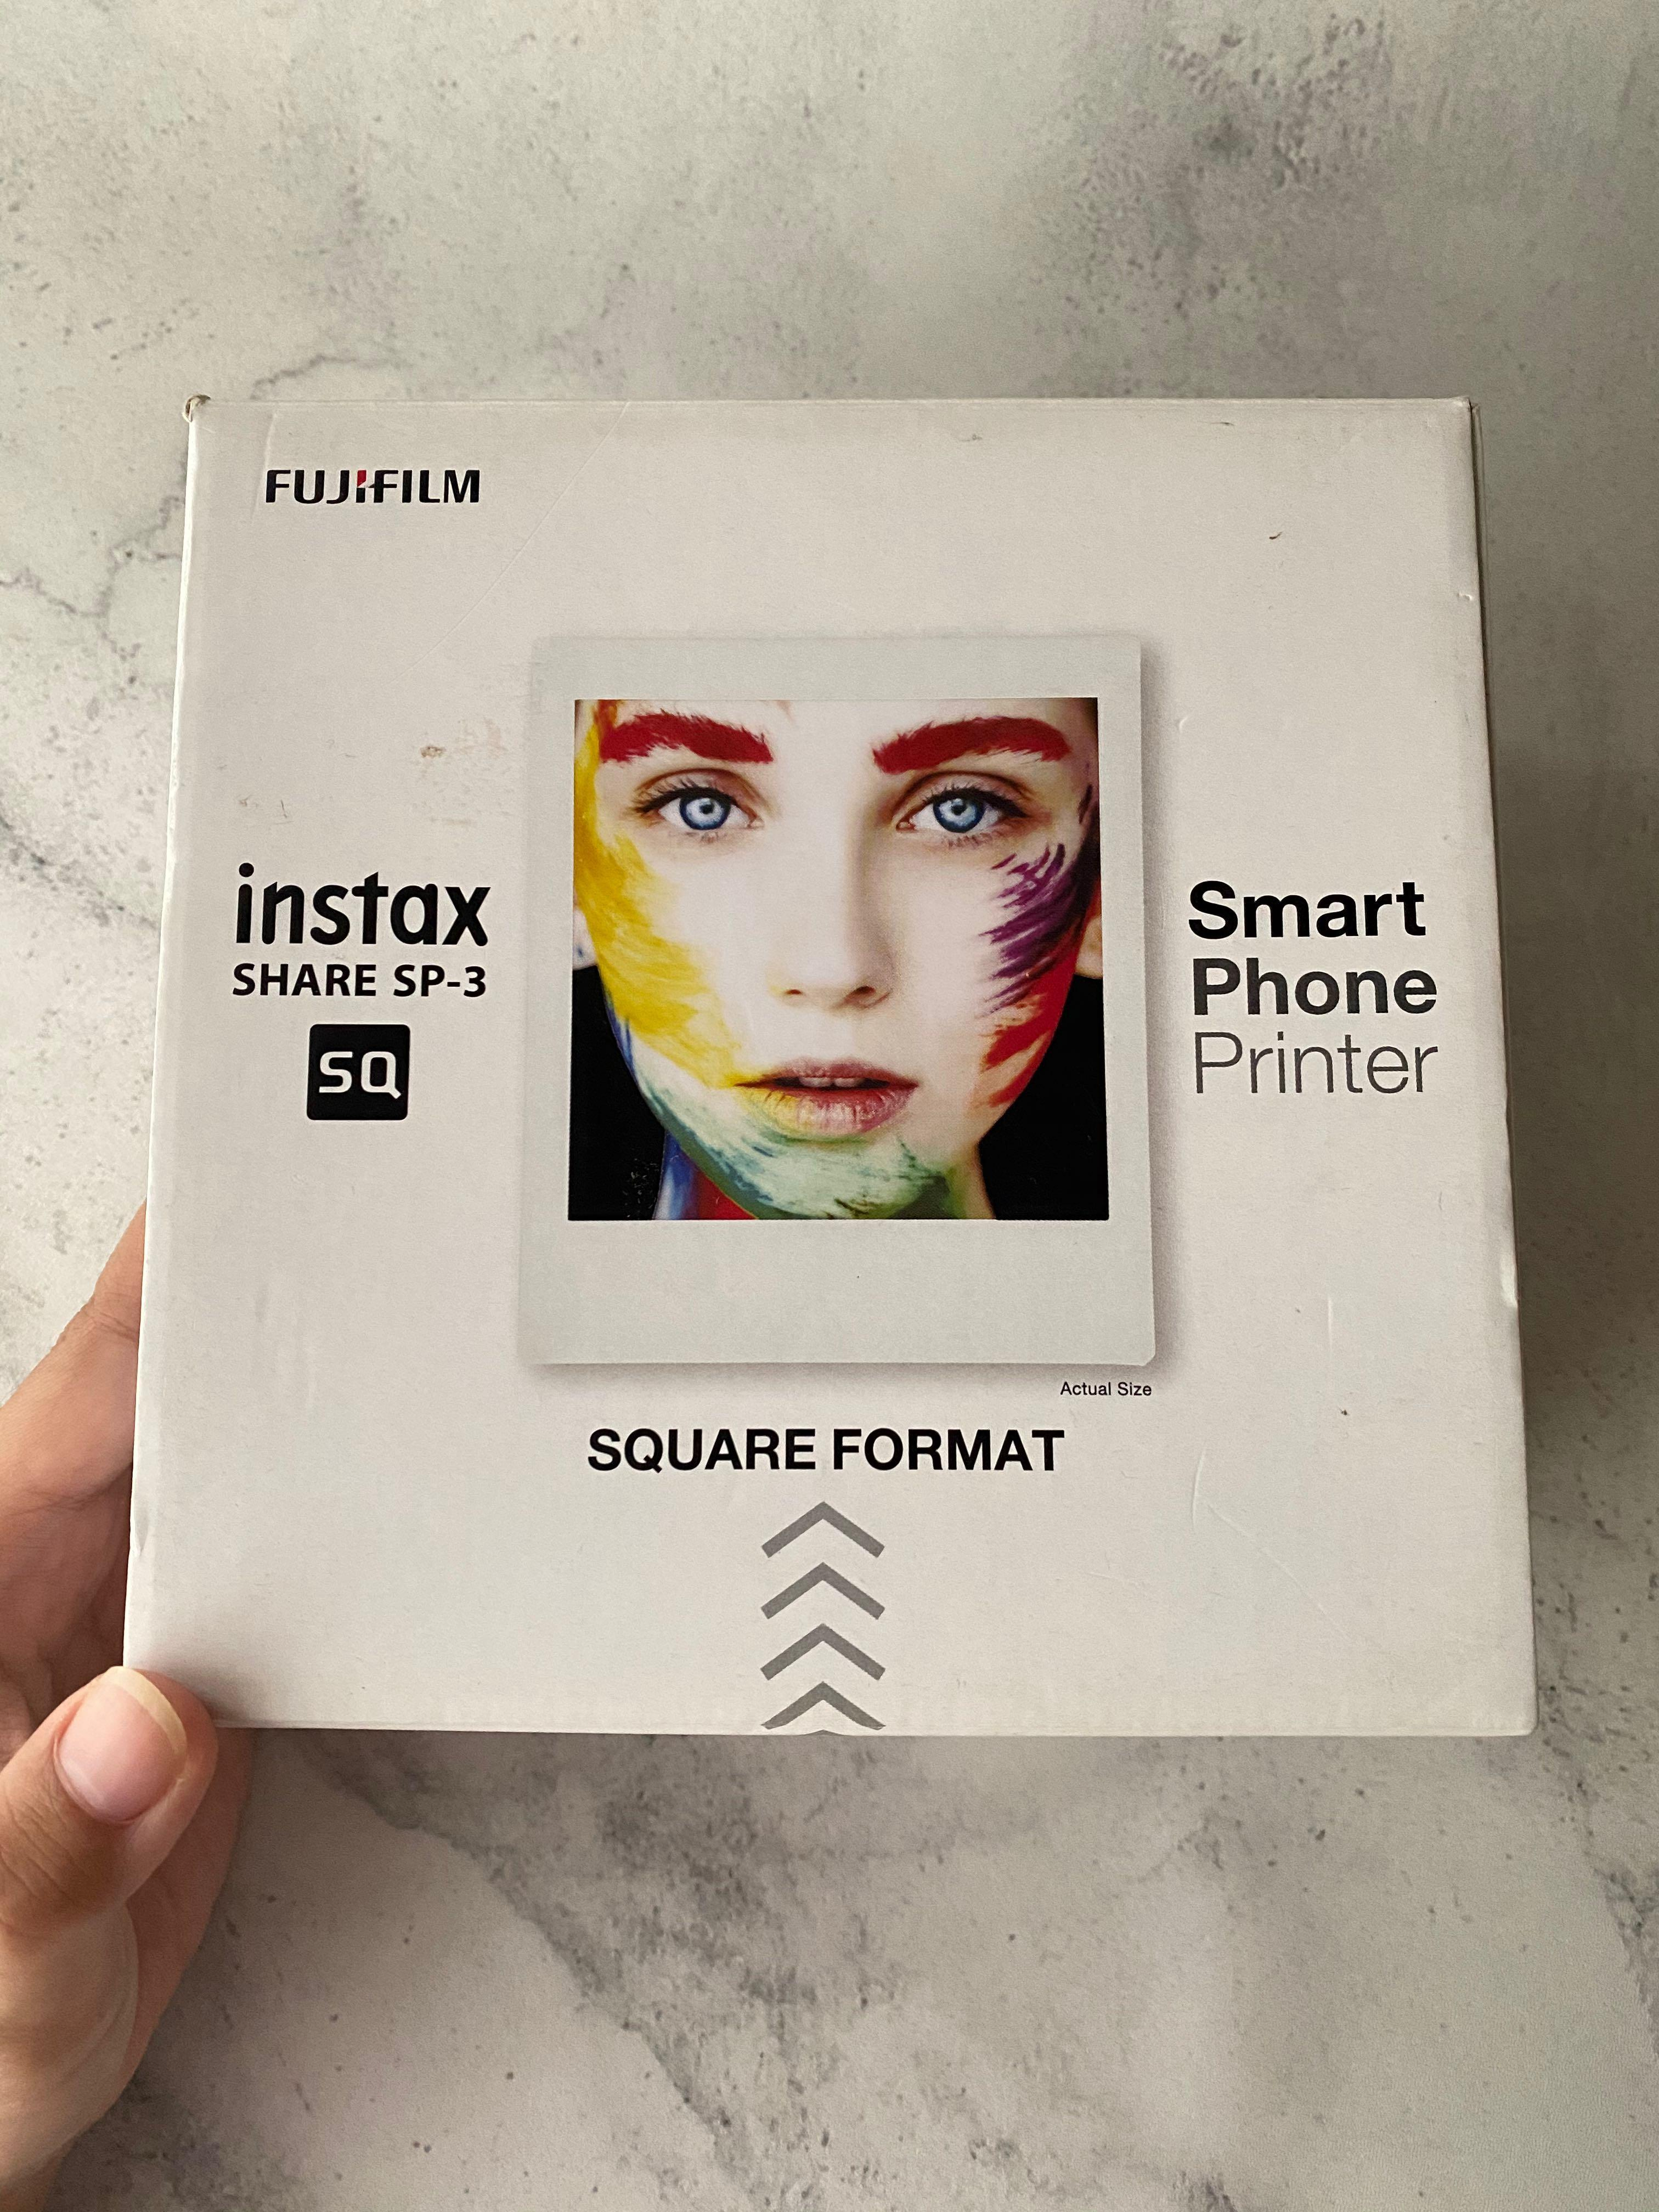 Instax Share SP-3 SQ